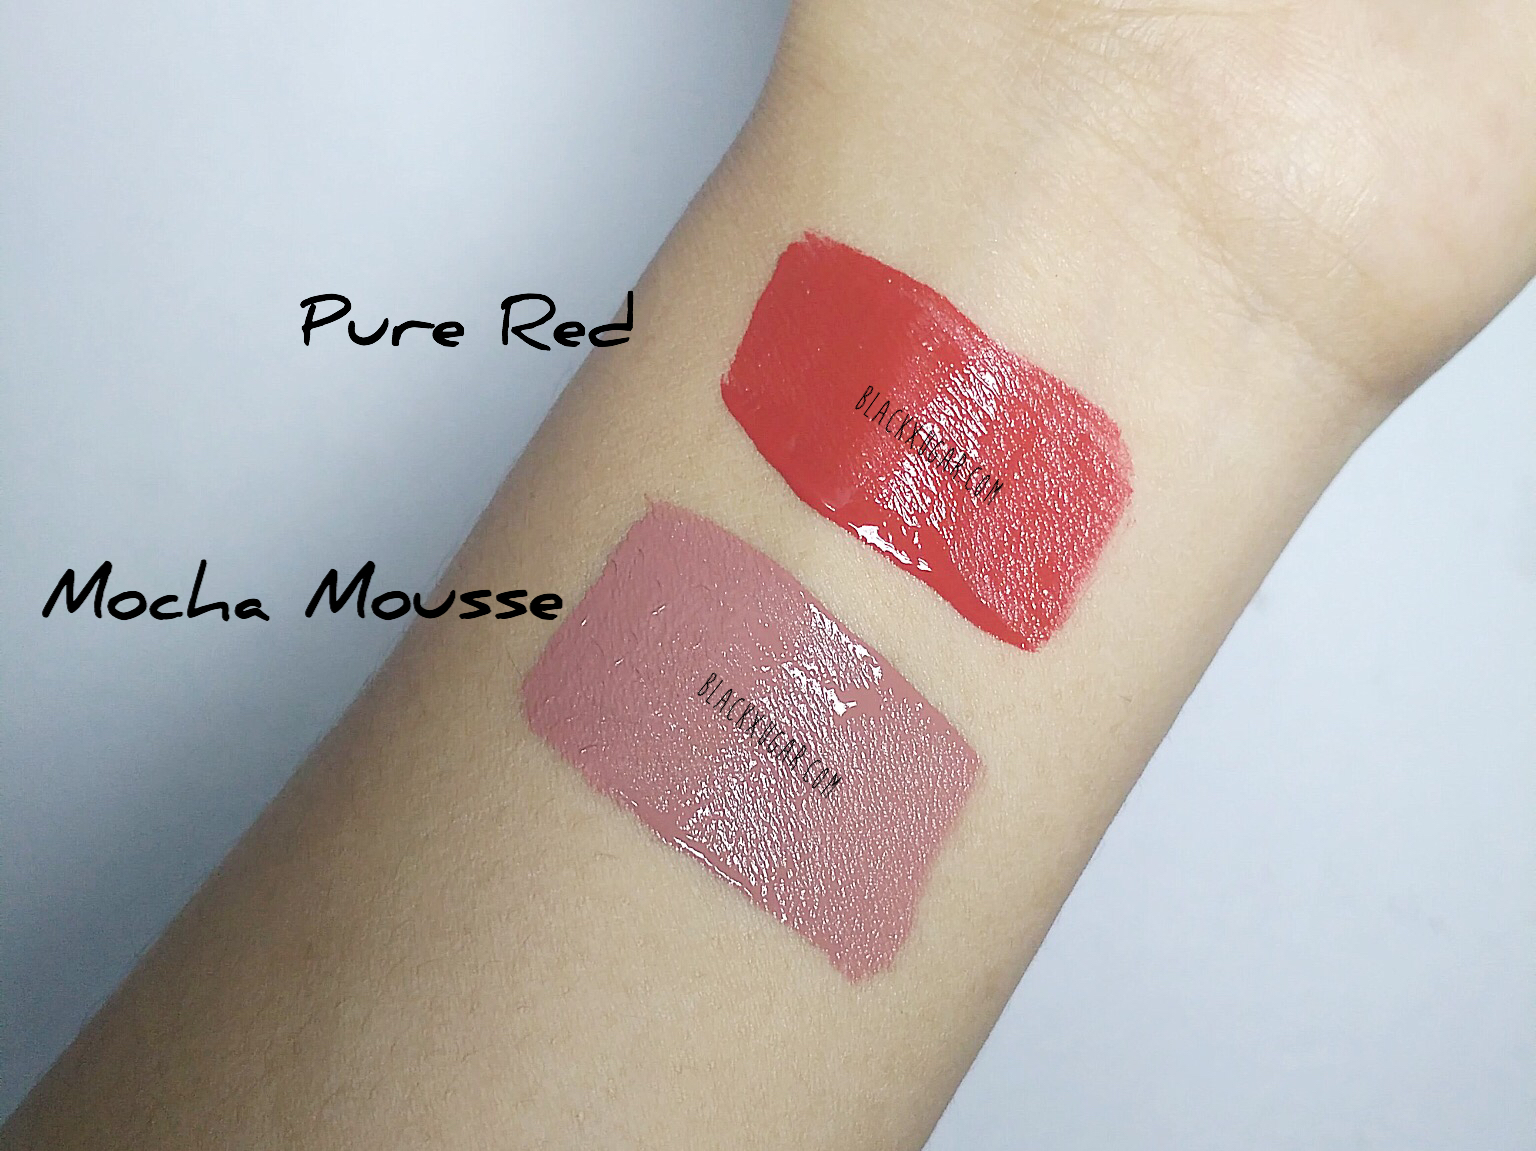 Zoya Lip Paint Pure Red Mocha Mousse Review Adhels Beauty Cafe When Applied